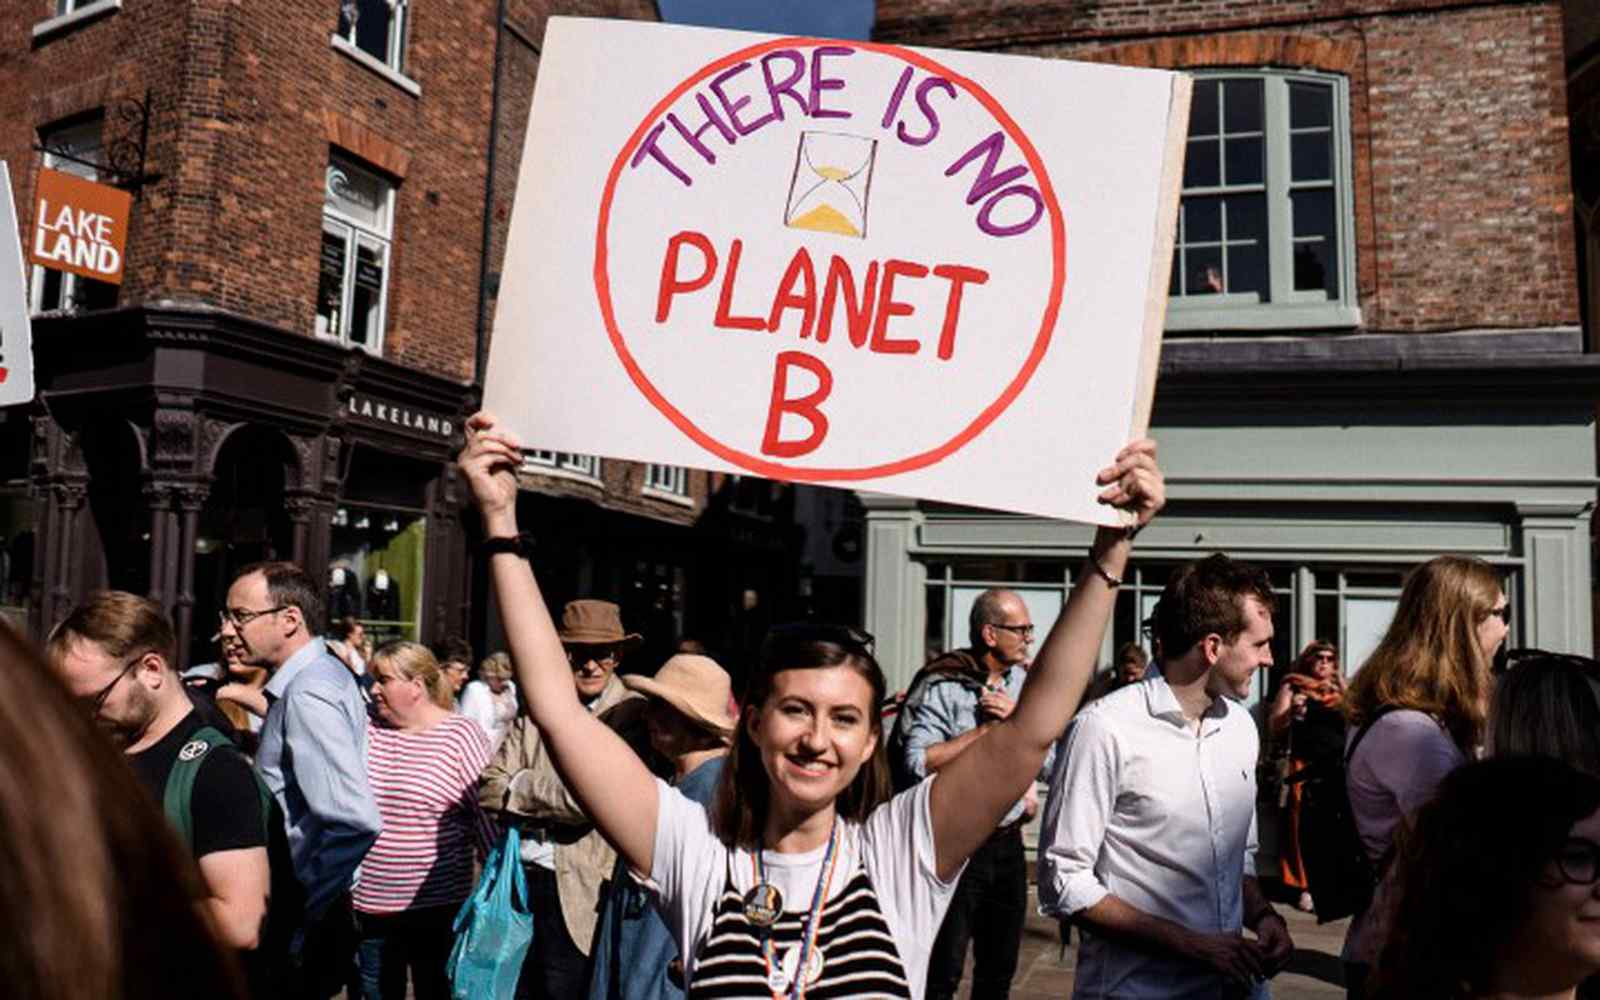 A smiling student holding a placard